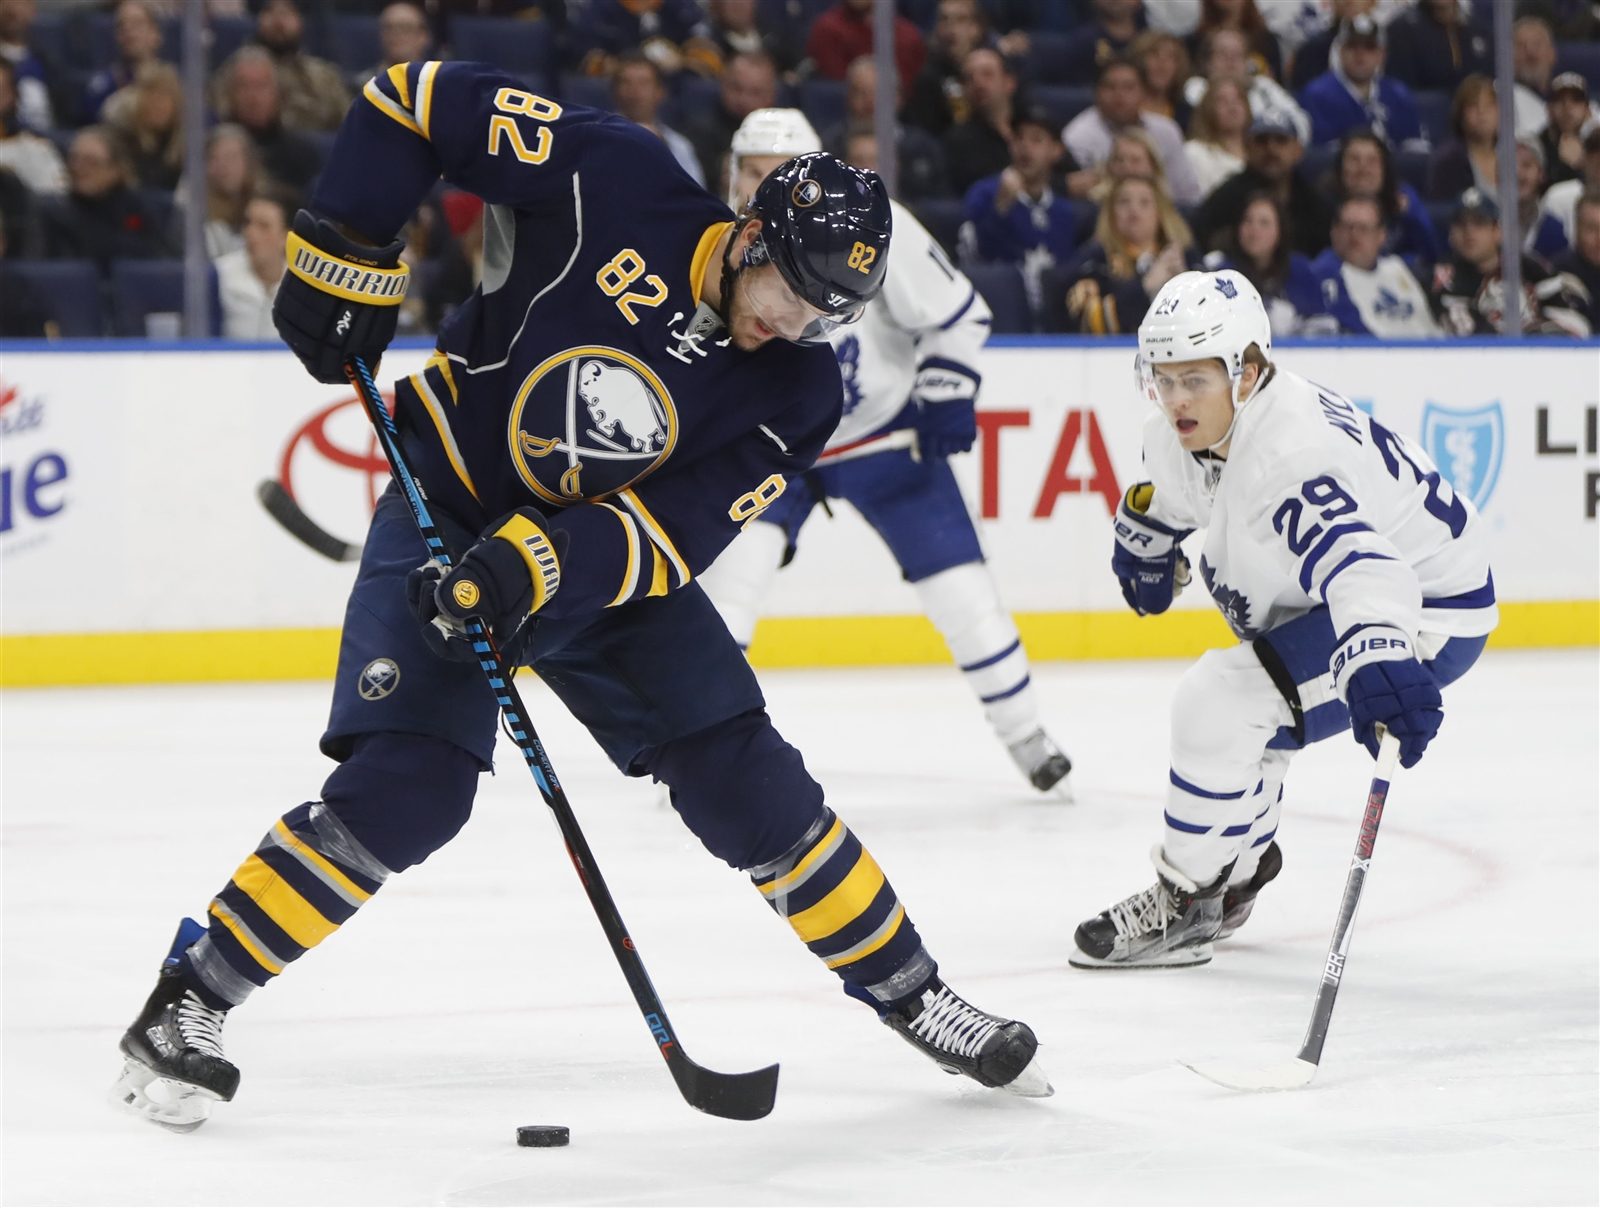 Marcus Foligno and the Sabres know it'll be loud when William Nylander and the Maple Leafs visit. (Harry Scull Jr./Buffalo News)